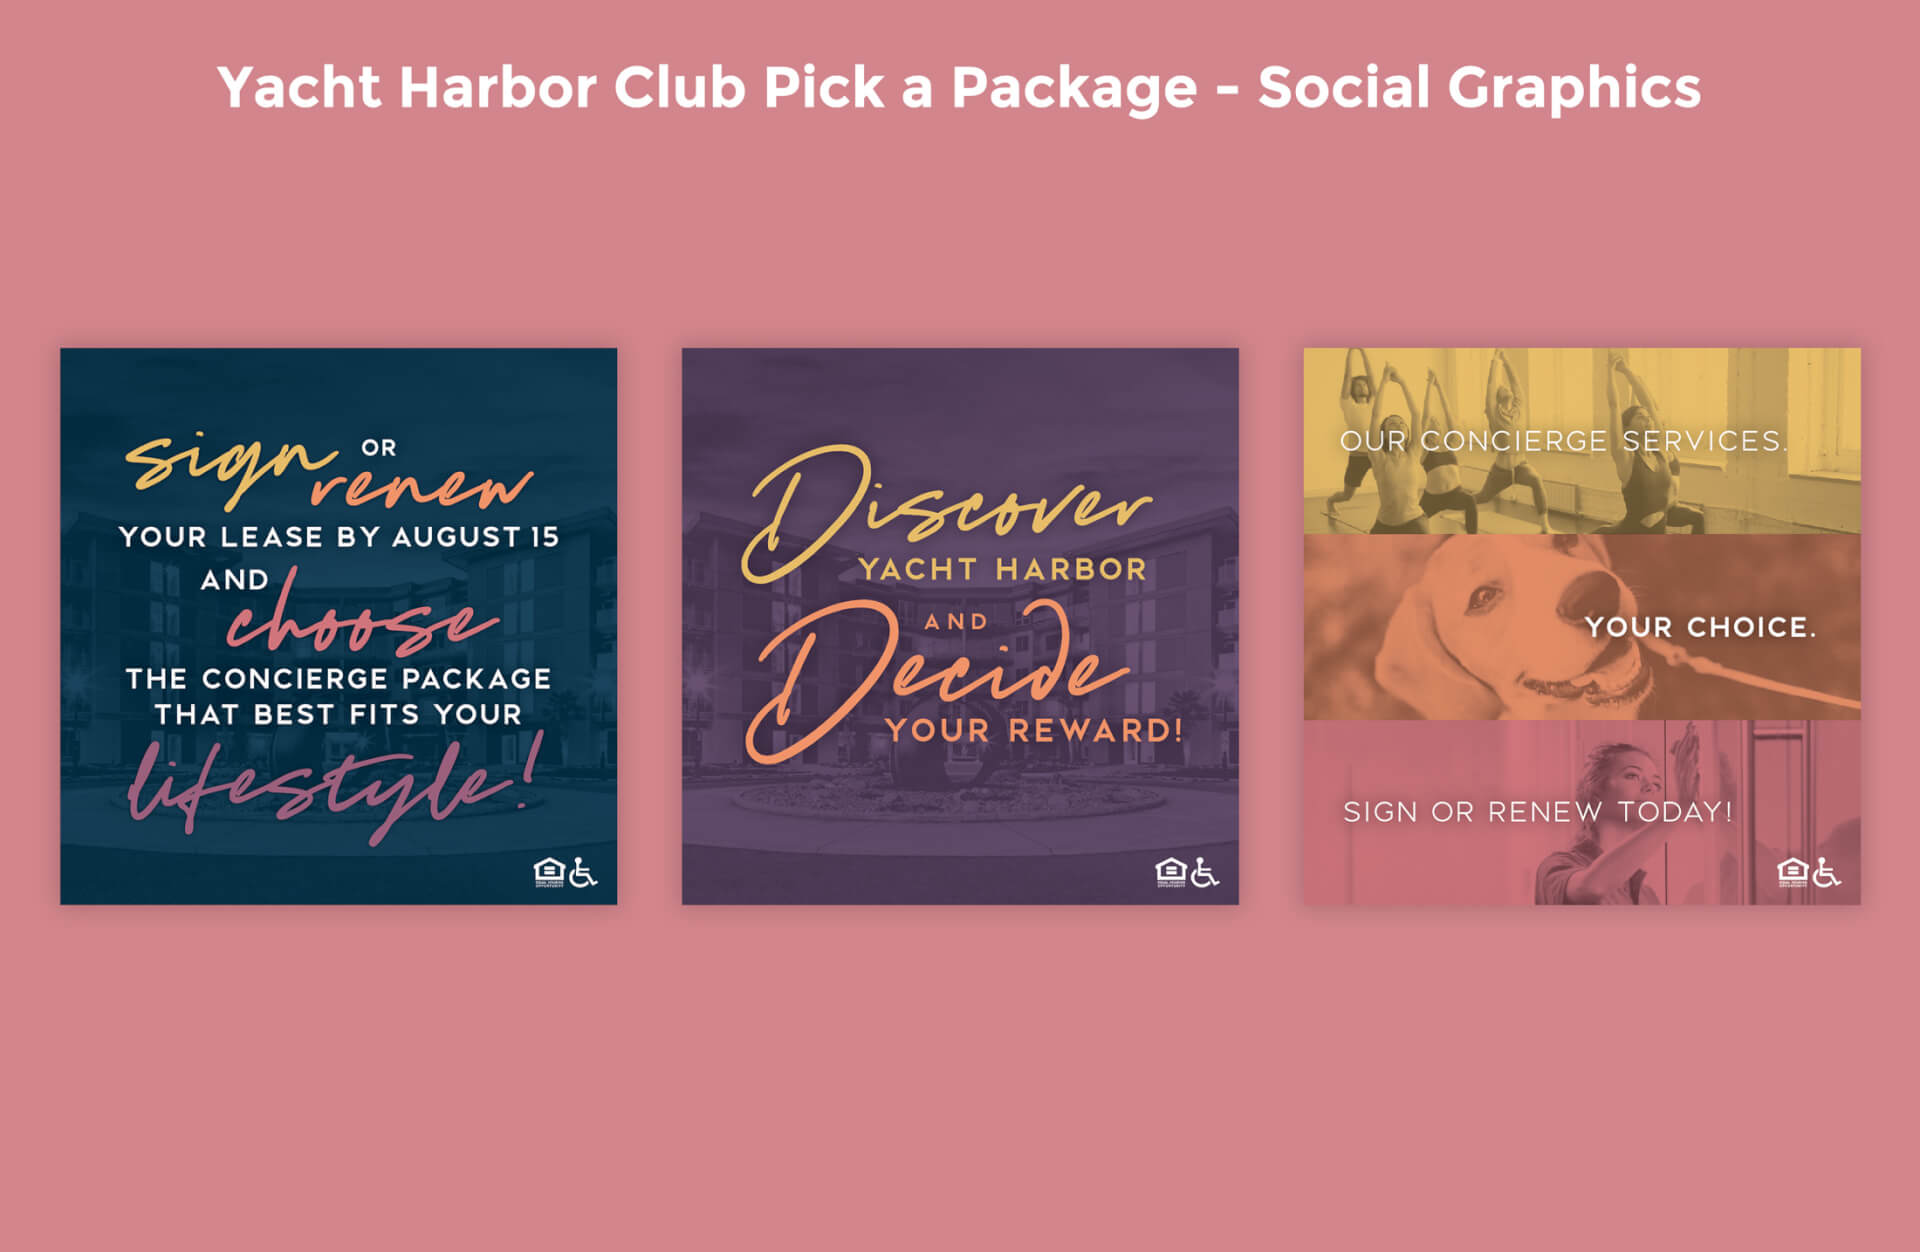 Yacht Harbor Club's Pick a Package Social Graphics